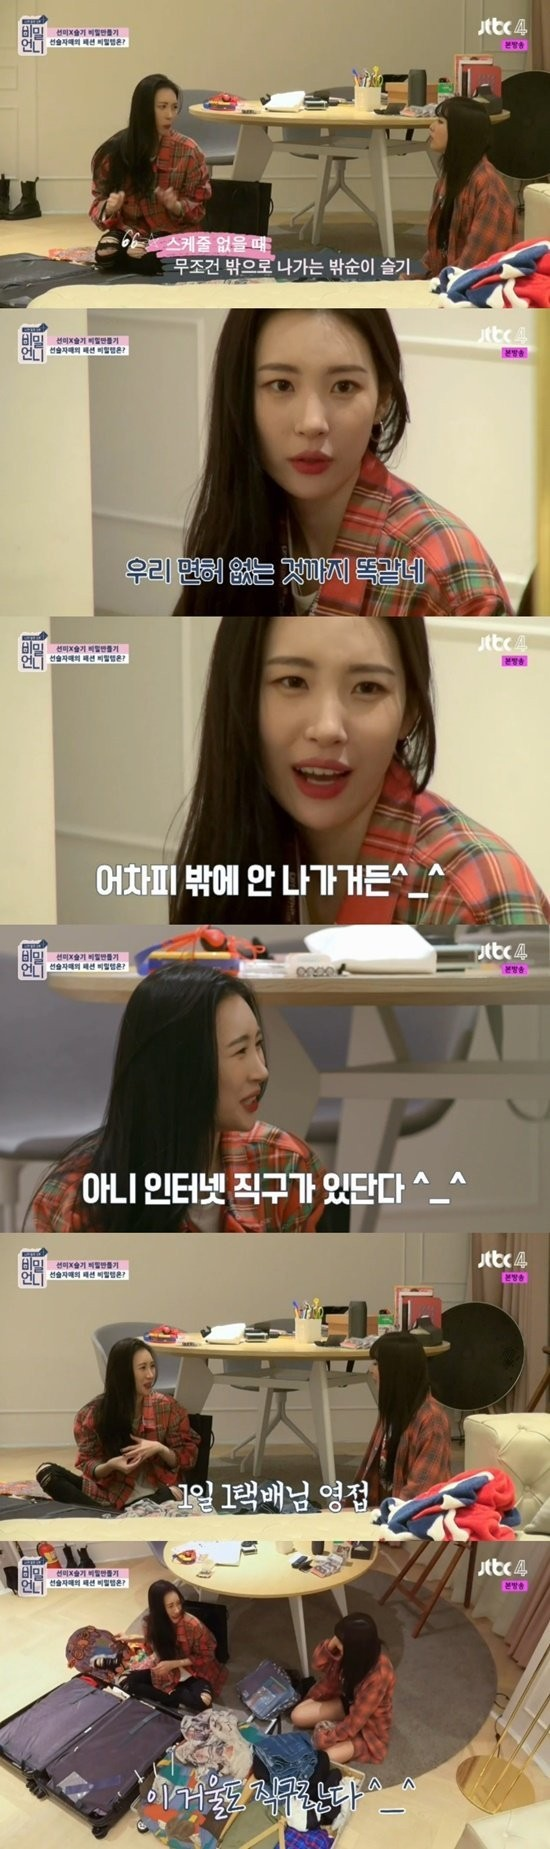 Sunmi talks about being a homebody | My News